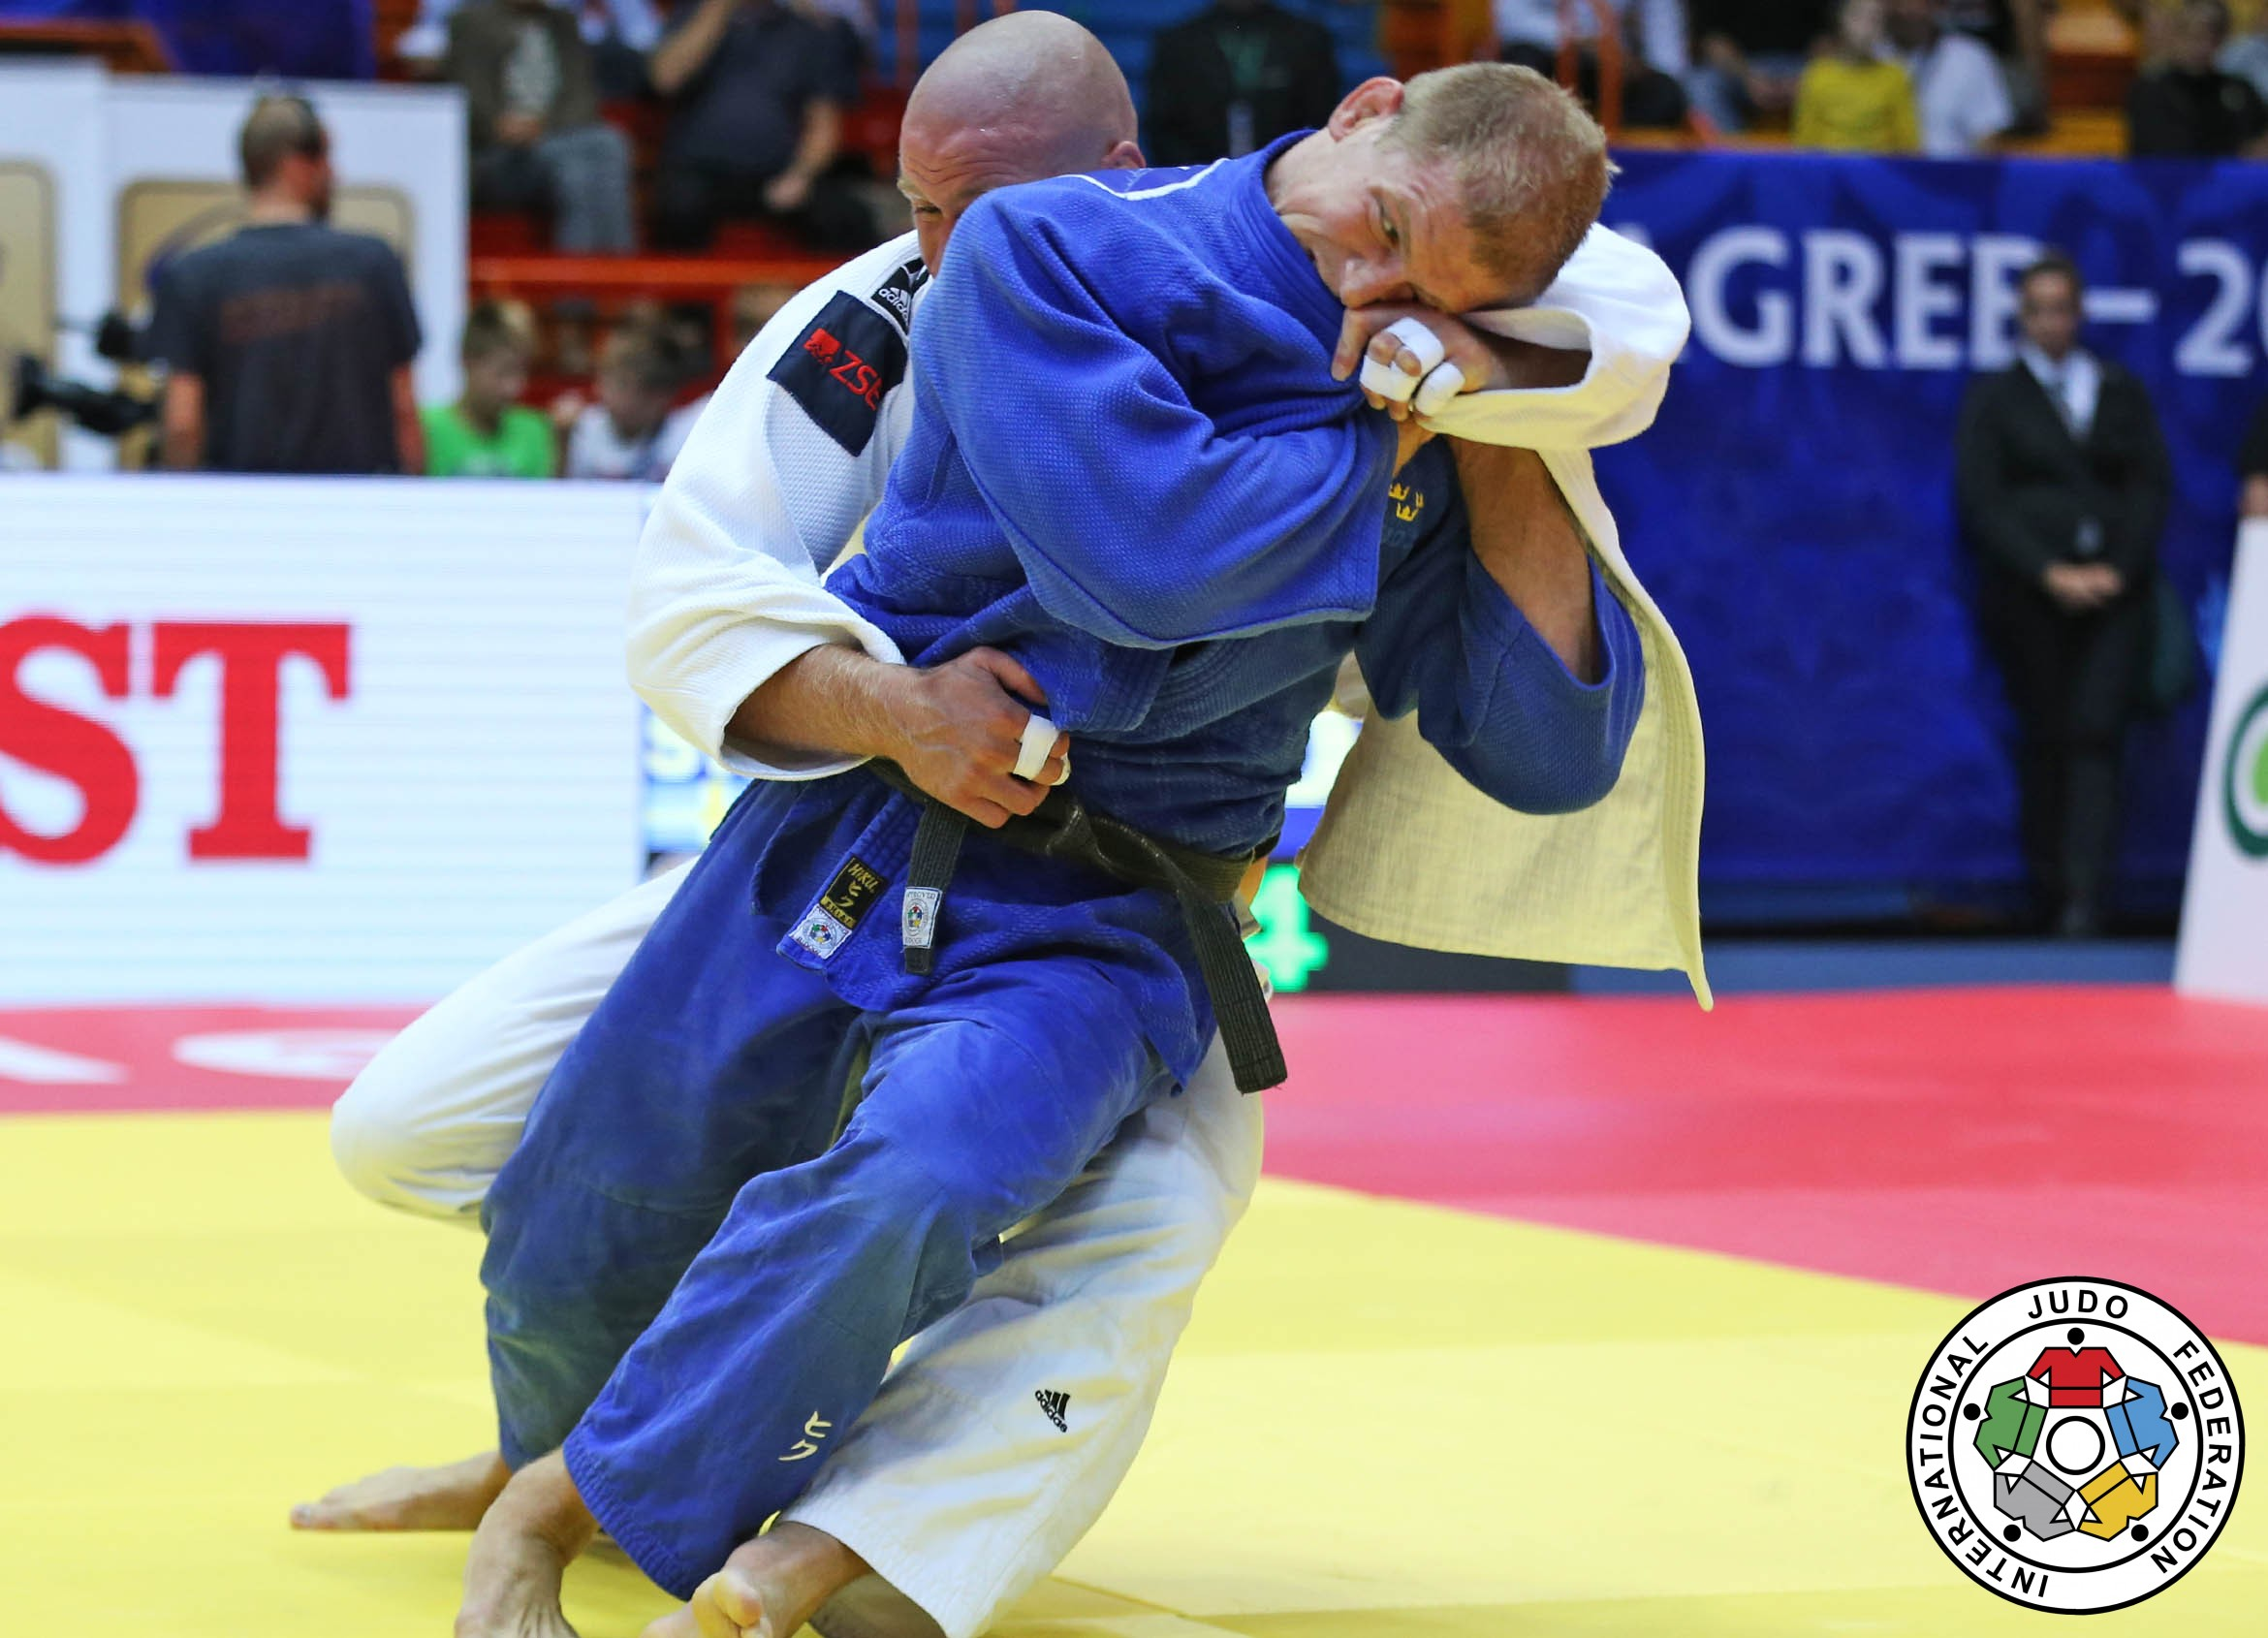 BUDO NORD CUP